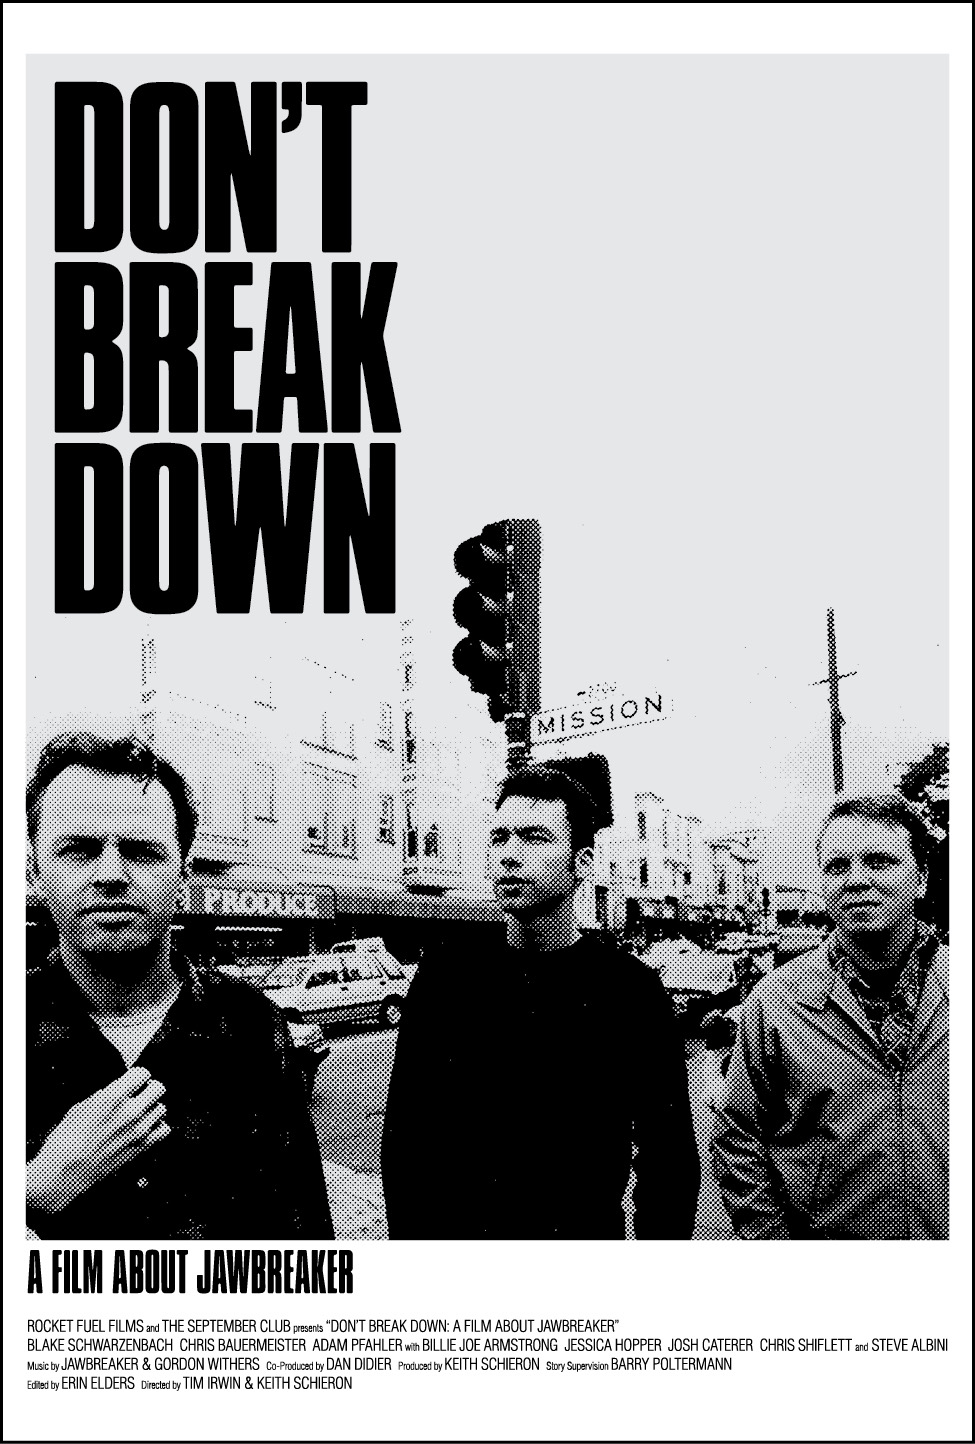 Saturday, September 23rd  Don't Break Down: A Film About Jawbreaker   Later this summer, Jawbreaker will reunite for their first show in 21 years at Chicago's Riot Fest, and that reunion will be preceded by a documentary about the band called Don't Break Down: A Film About Jawbreaker, which was directed by Tim Irwin and Keith Schieron (who also made the Minutemen doc We Jam Econo) and has been in the works for over a decade.   Doors at 7pm, showing at 7:30pm $8 in advance and at the door